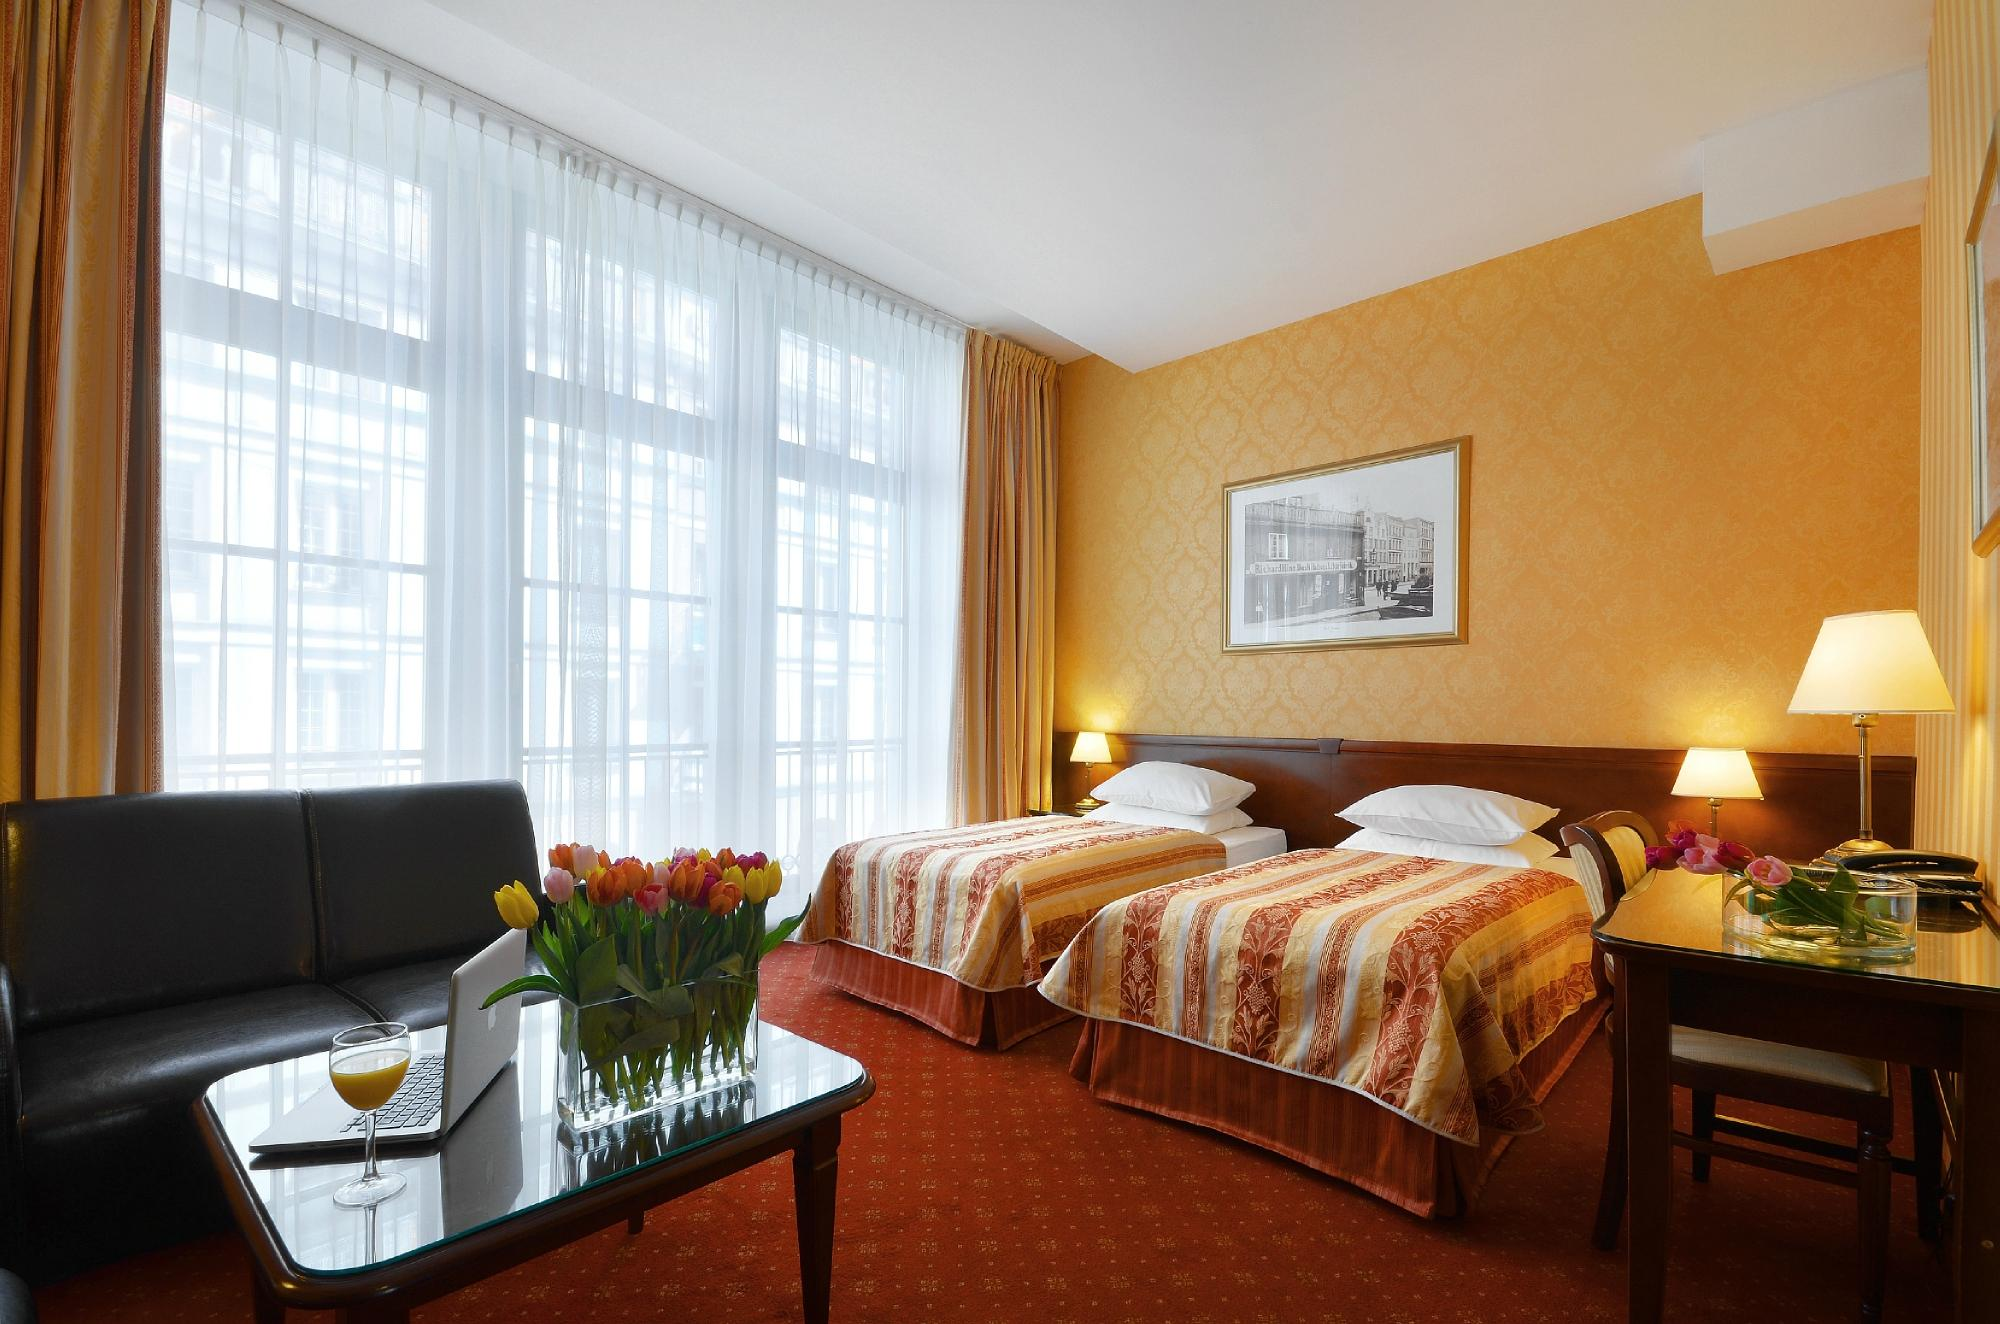 Wolne Miasto Hotel- Old Town Gdansk